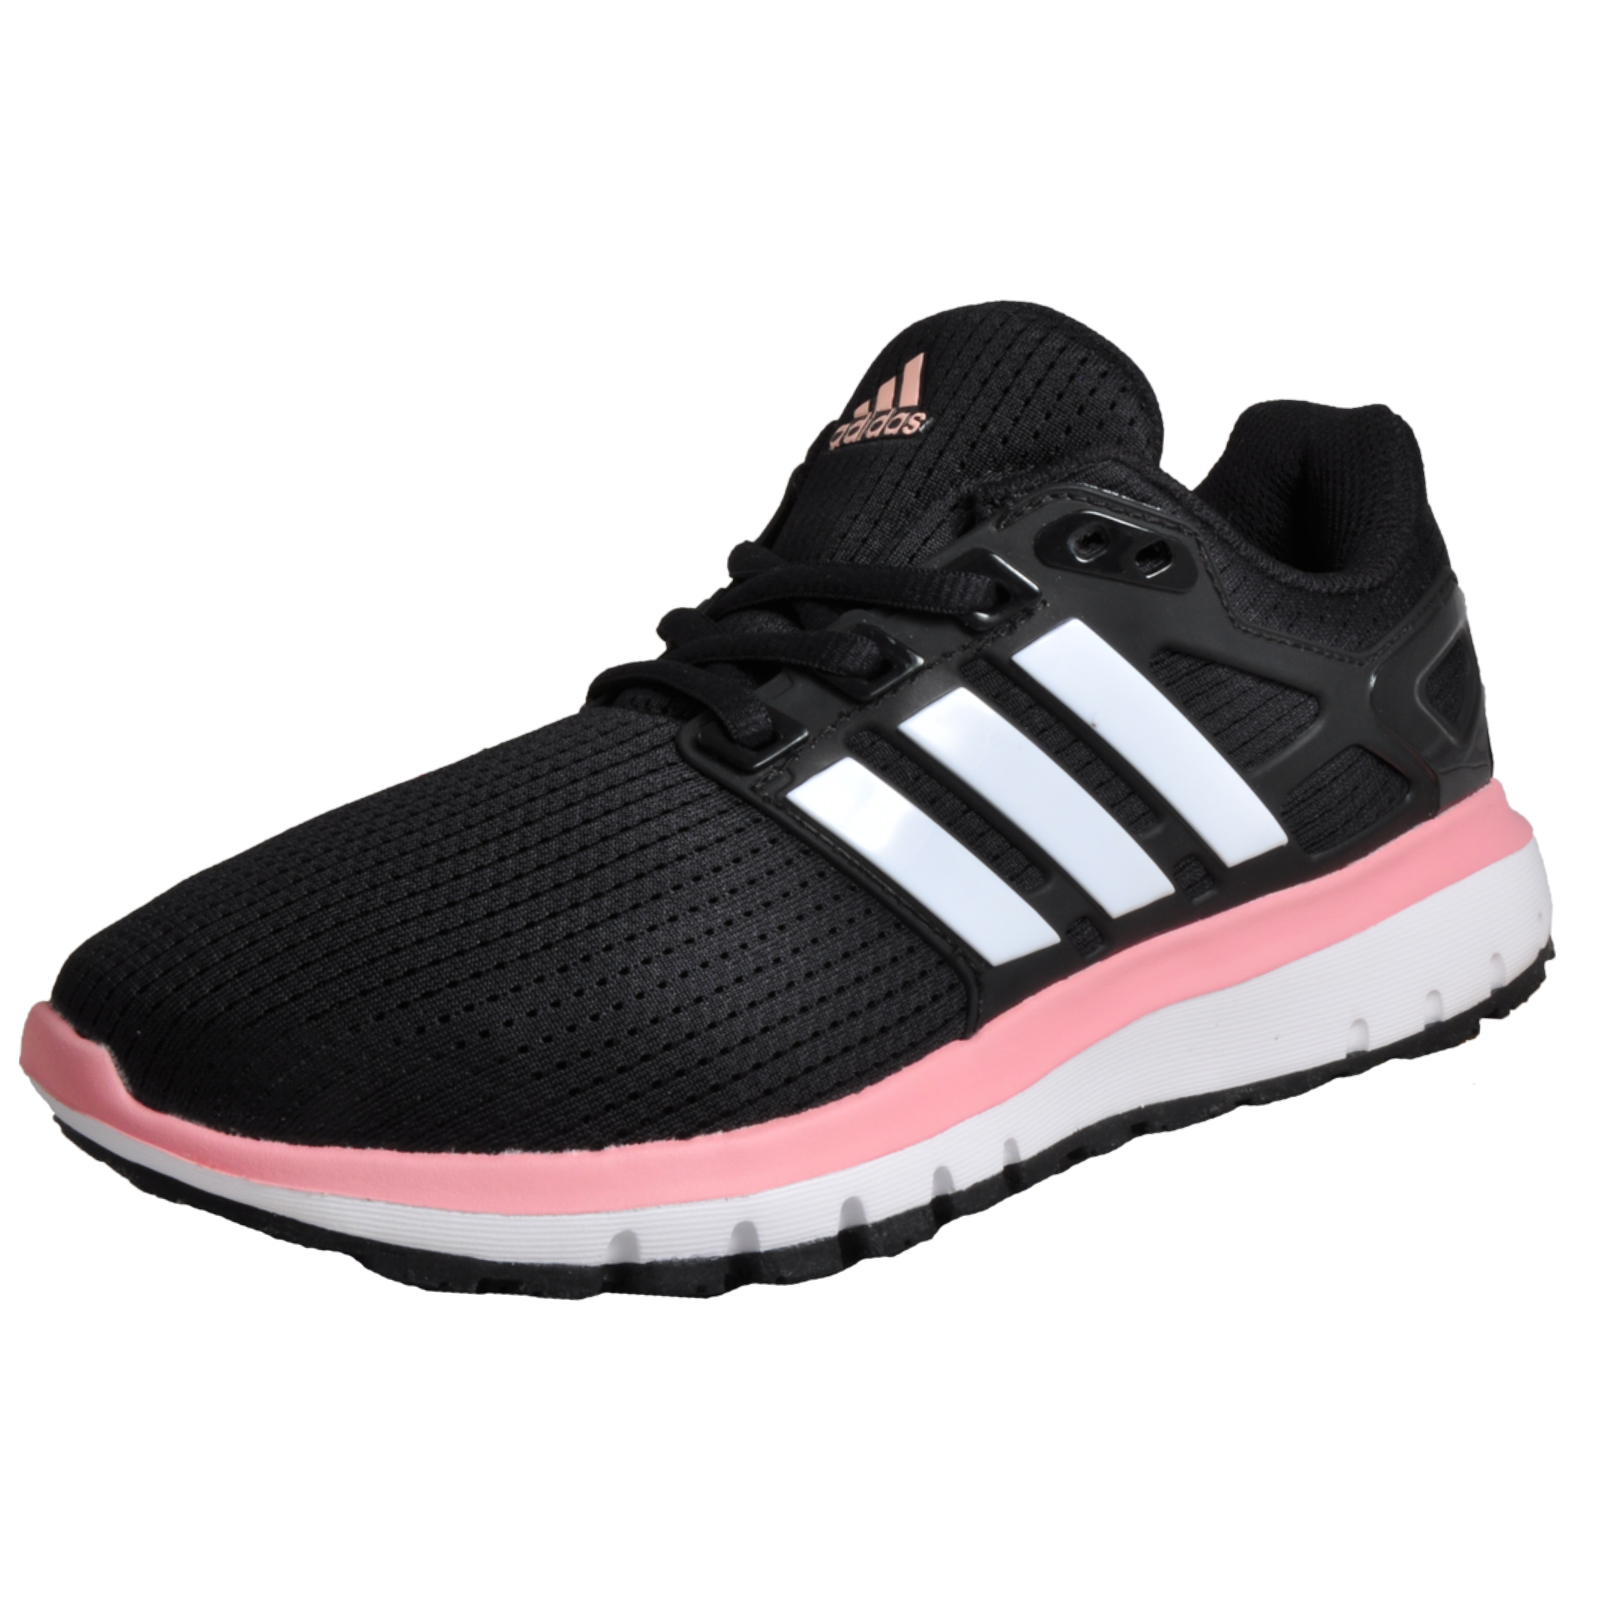 timeless design c1940 4b9a2 Details about Adidas Energy Cloud WTC Women s Running Shoes Fitness Gym  Fashion Trainers Black